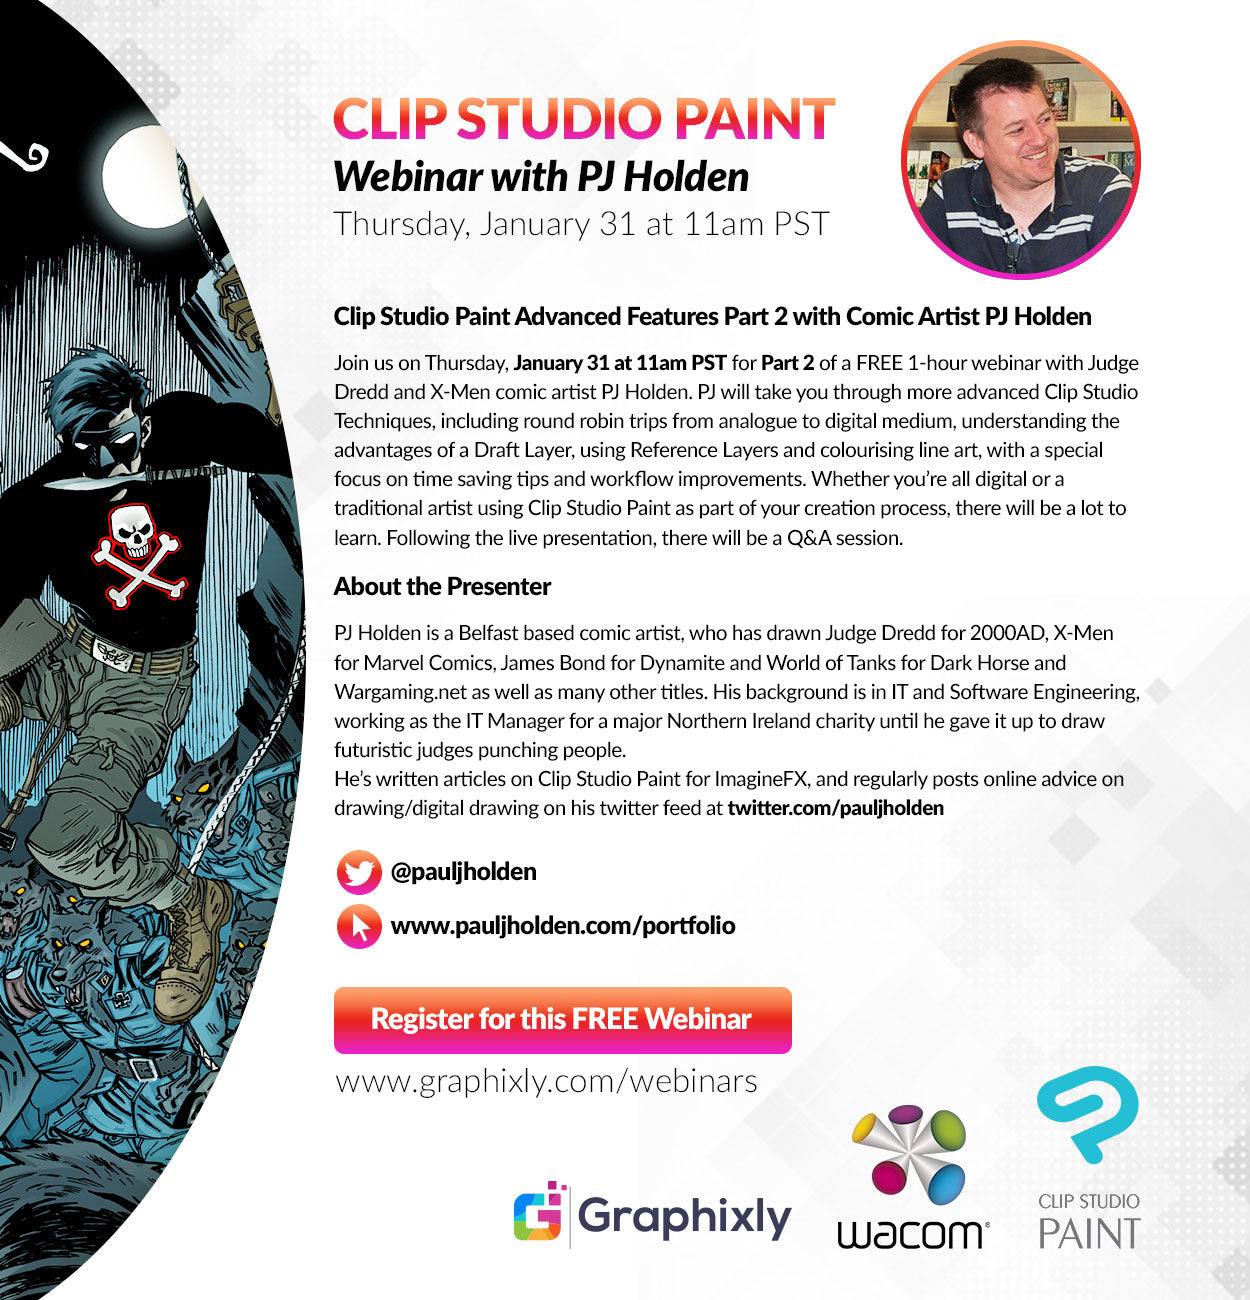 Webinar - Clip Studio Paint Advanced Features Part 2 with Comic Artist PJ Holden